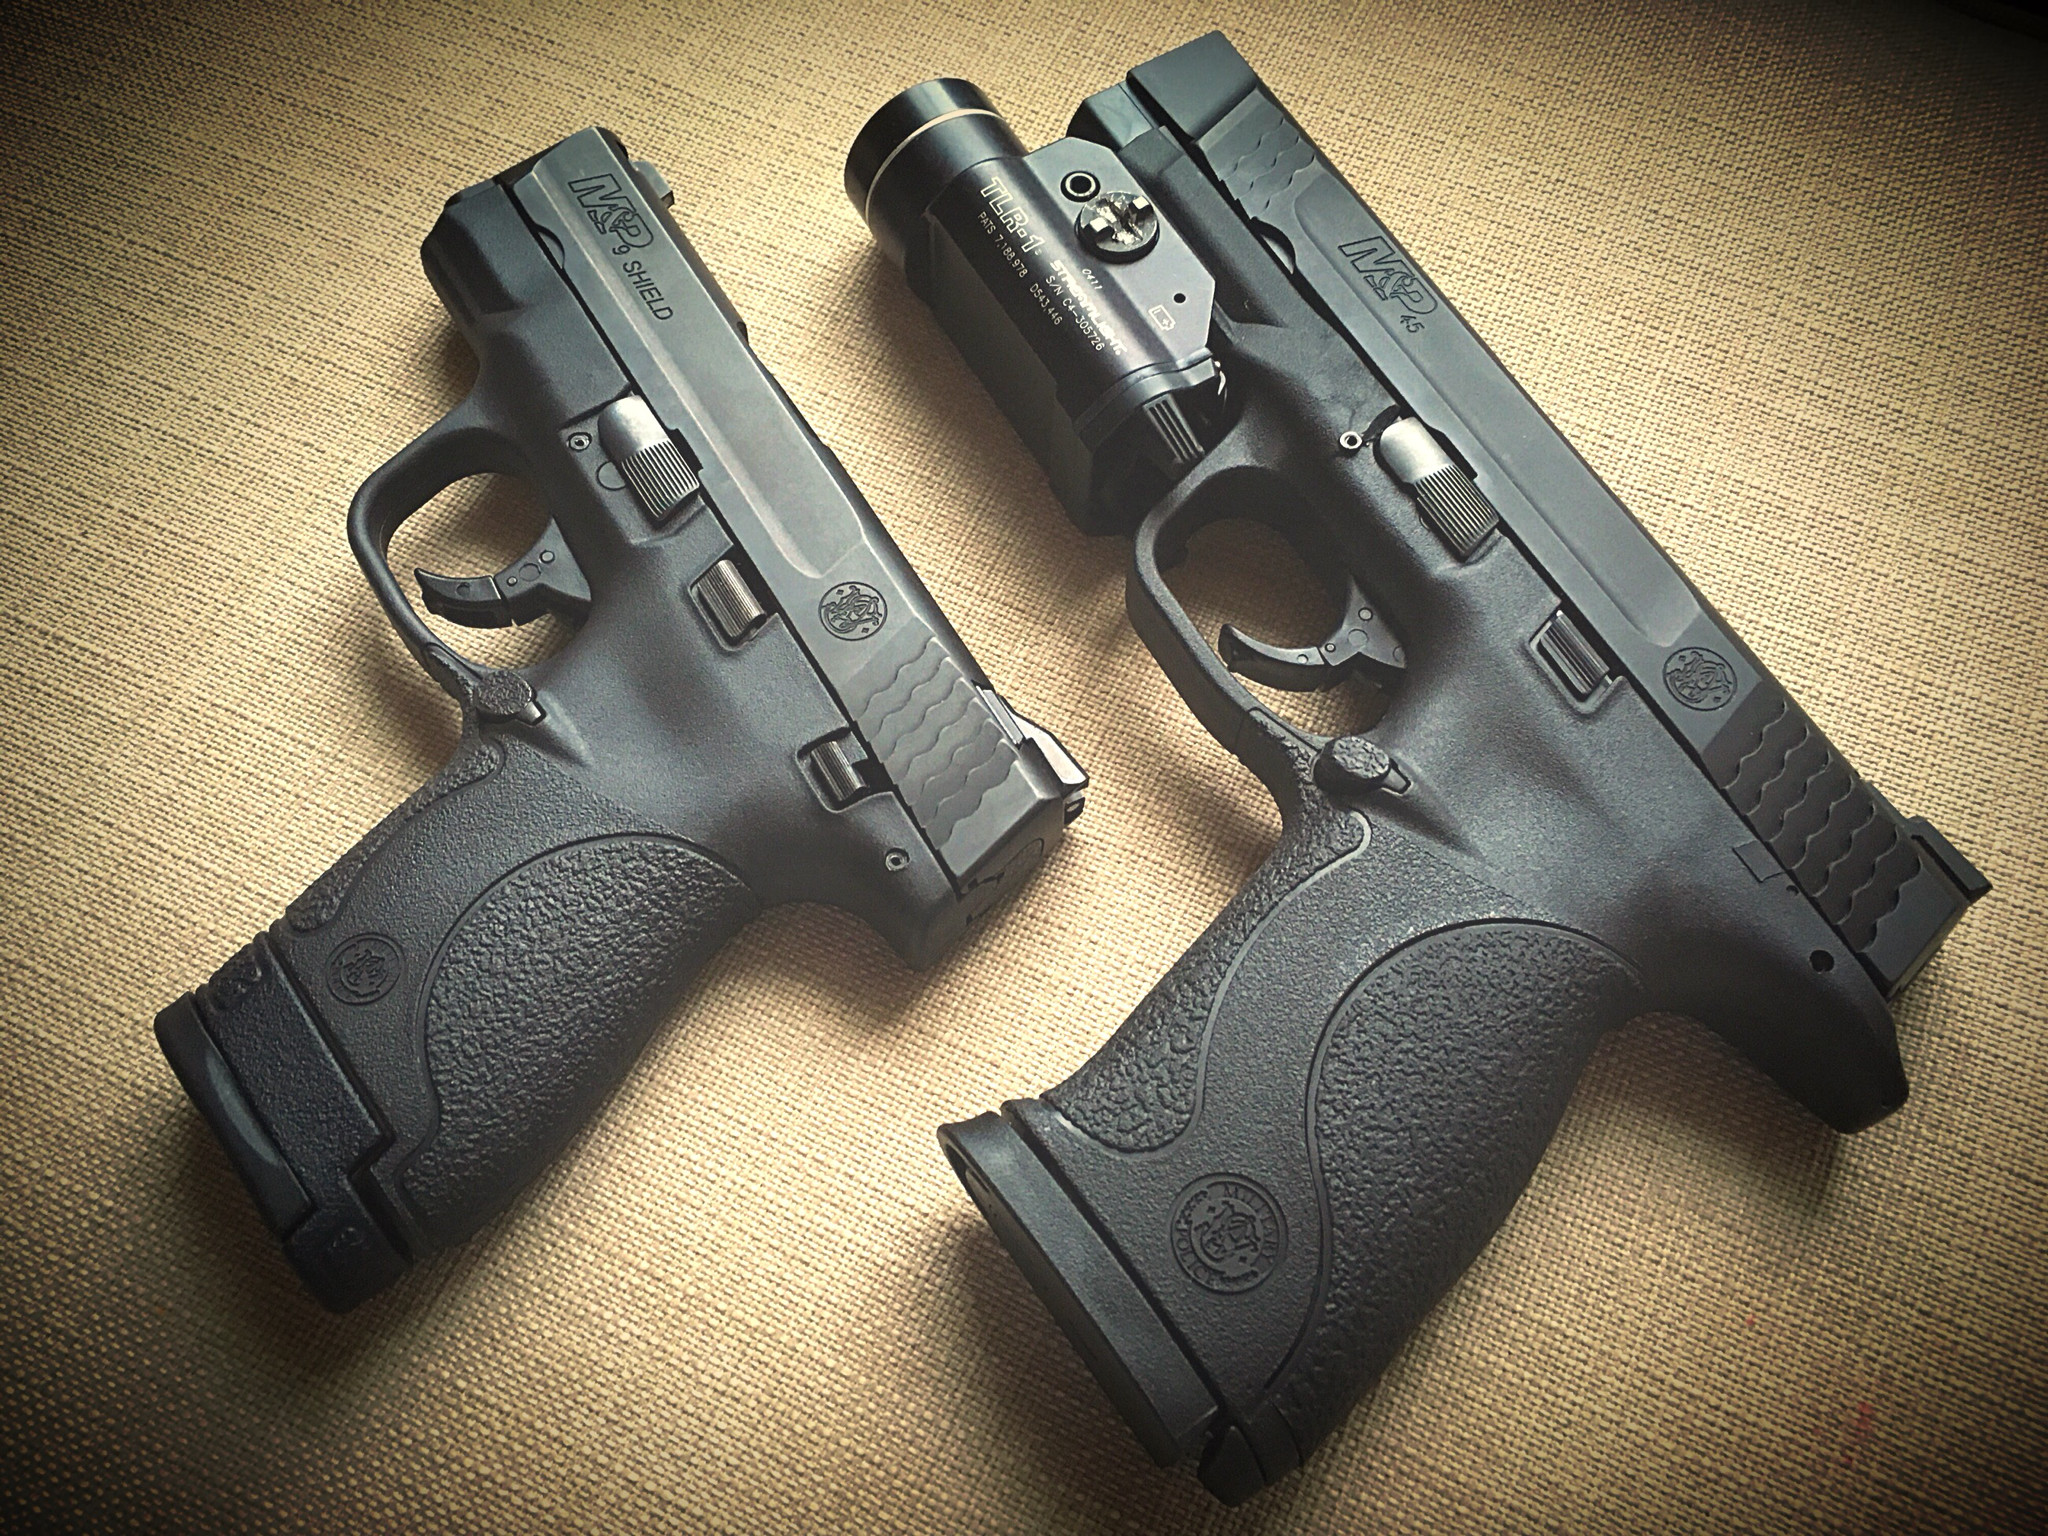 2048x1536 S&W Smith & Wesson M&P - Full Size 45 - 9mm Shield Find our speedloader now